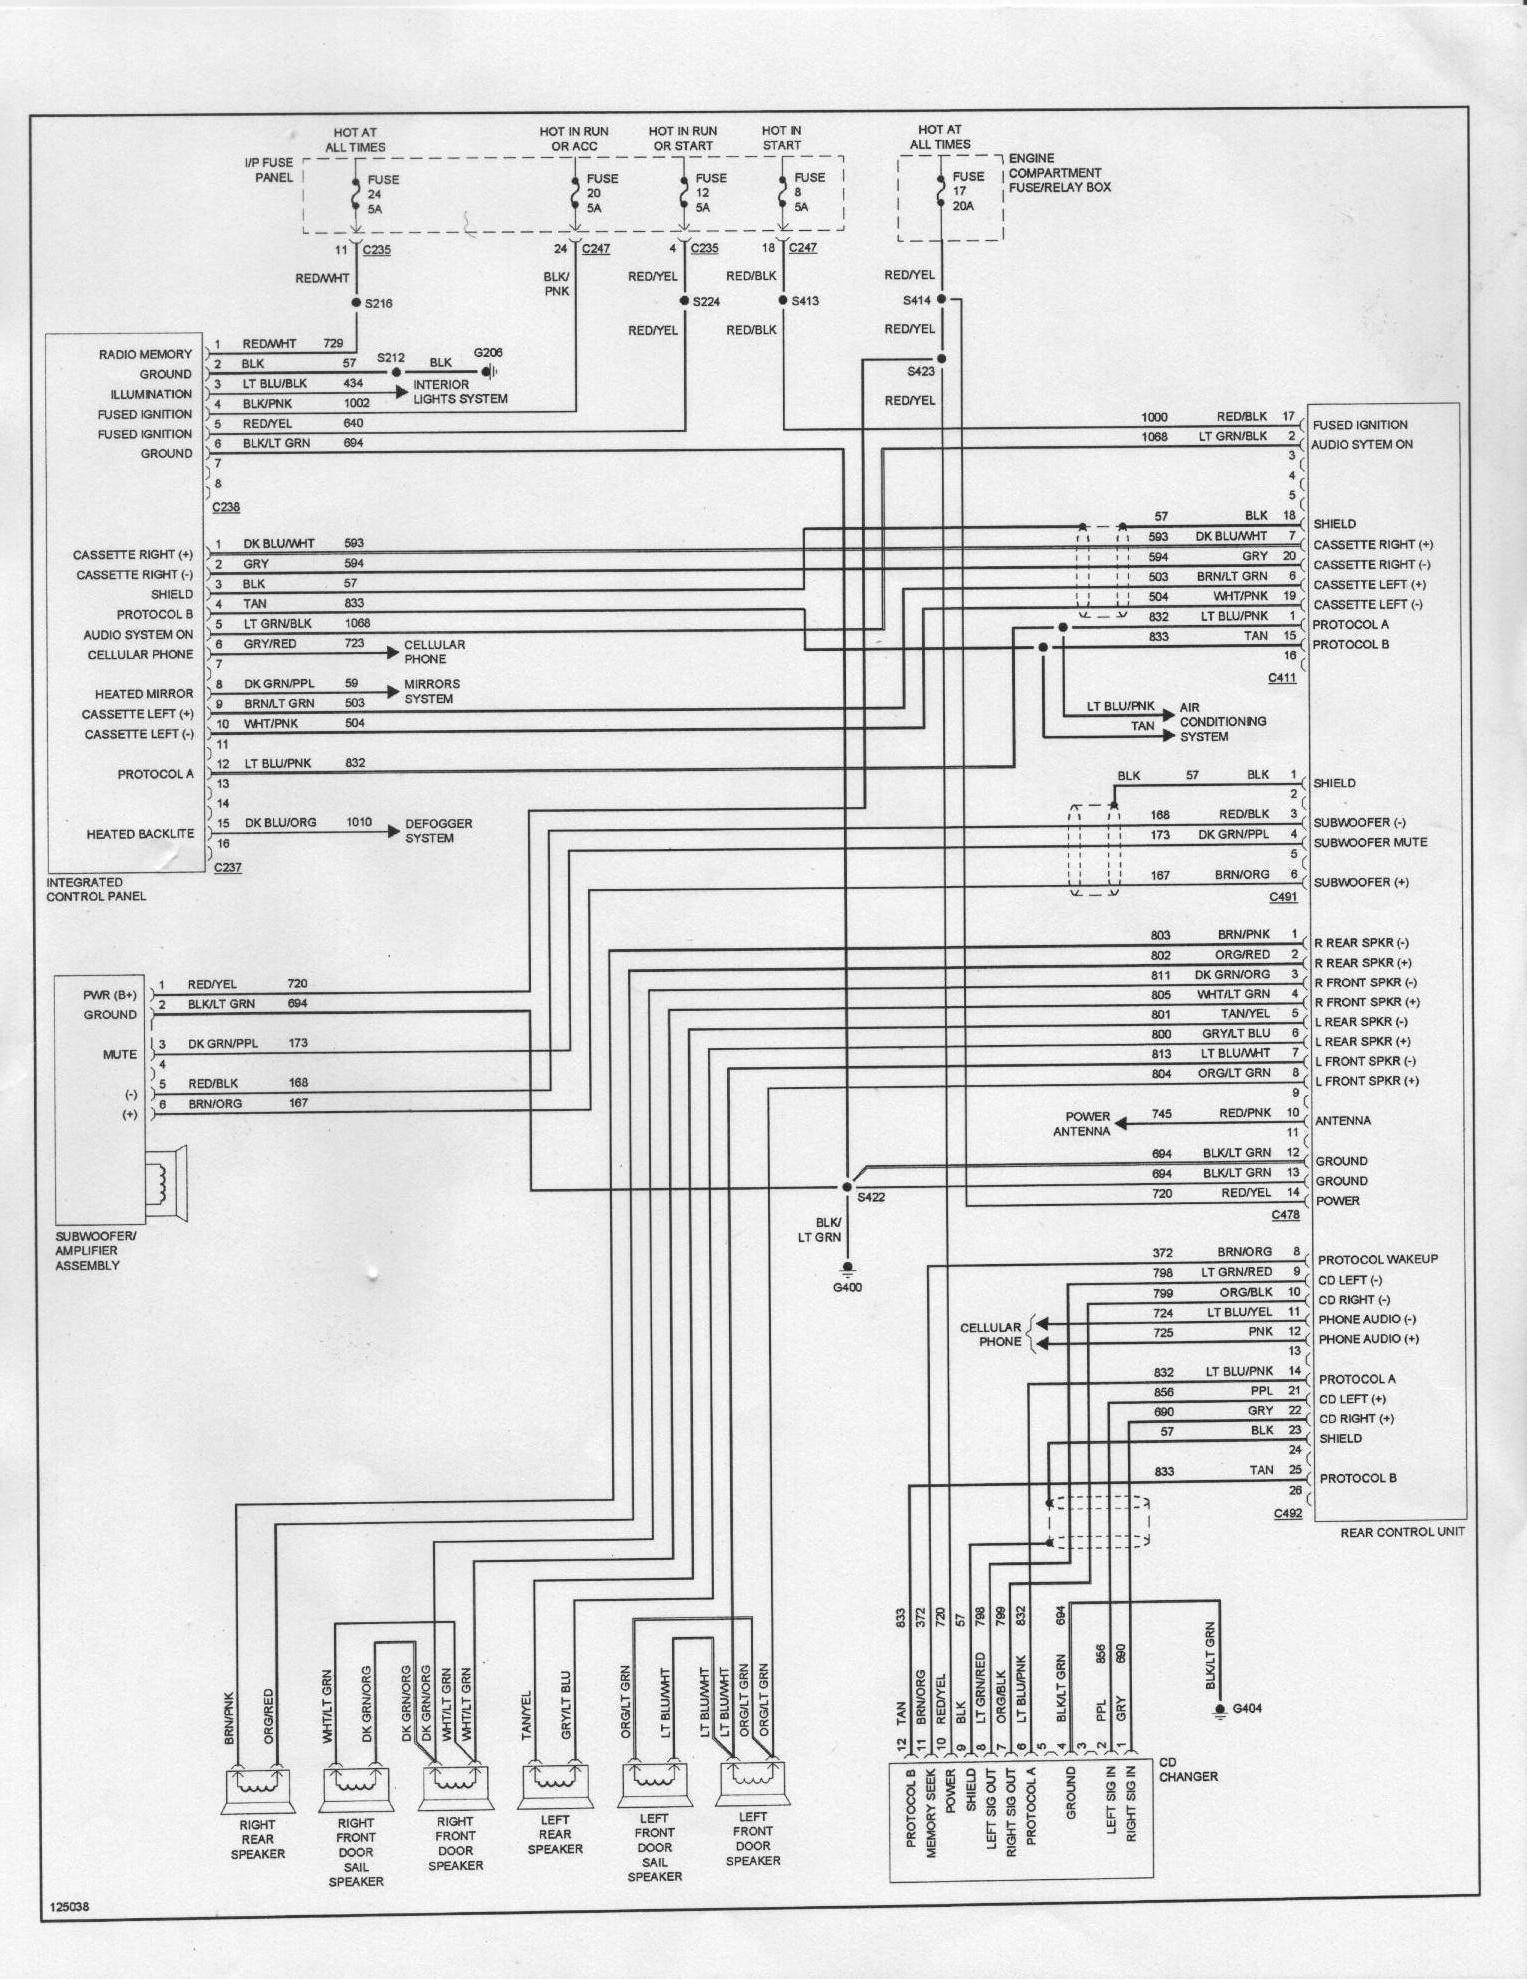 Scosche Gm2000Sw Wiring Diagram from static-cdn.imageservice.cloud